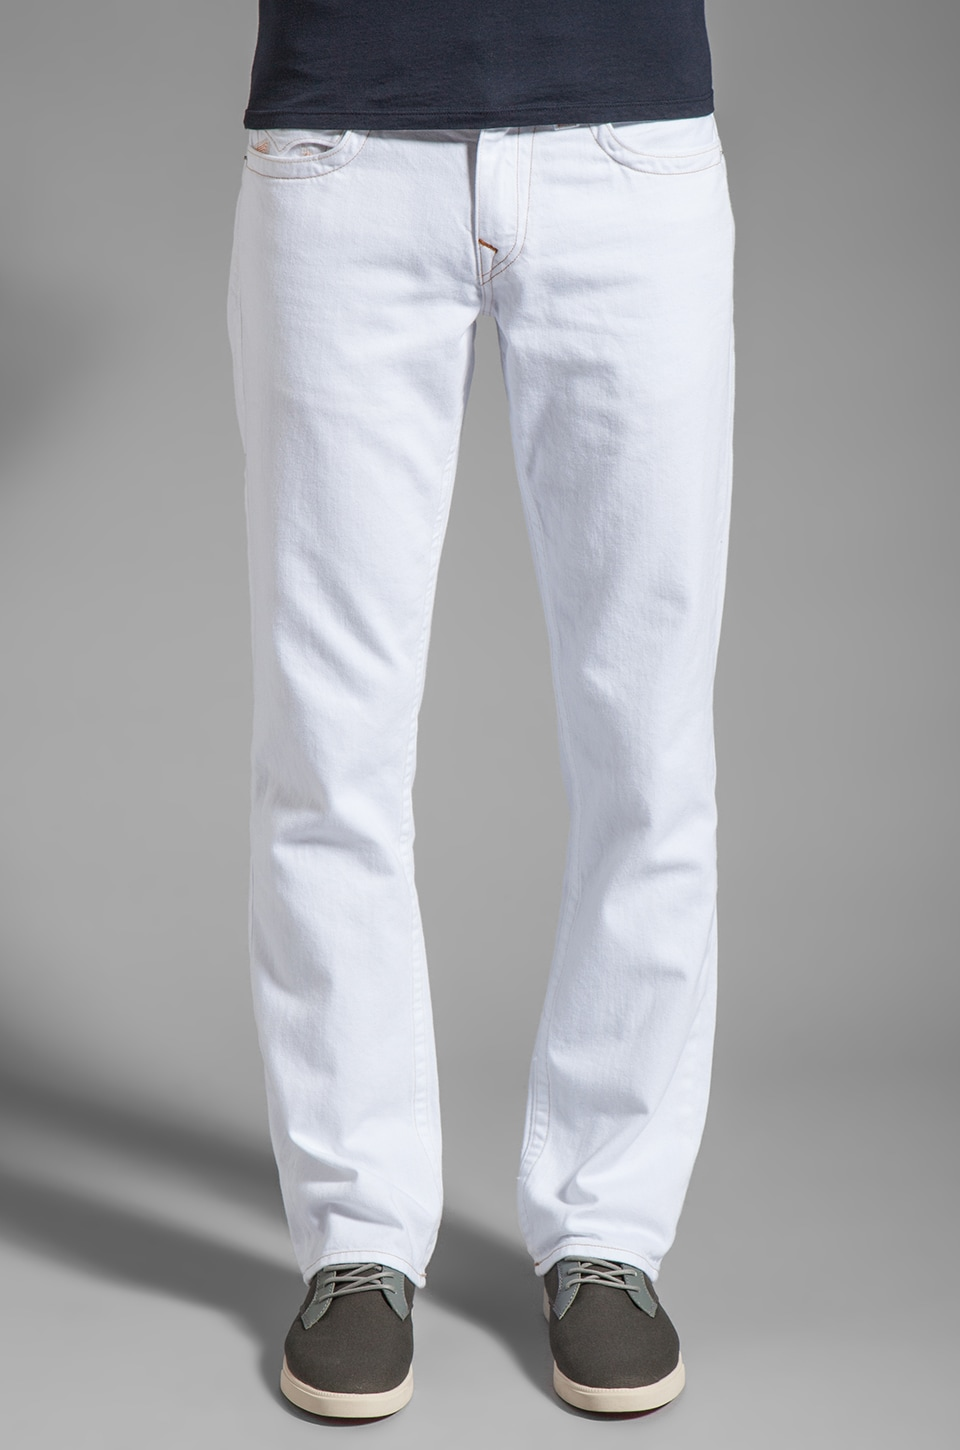 True Religion Ricky Straight Leg in Optic White